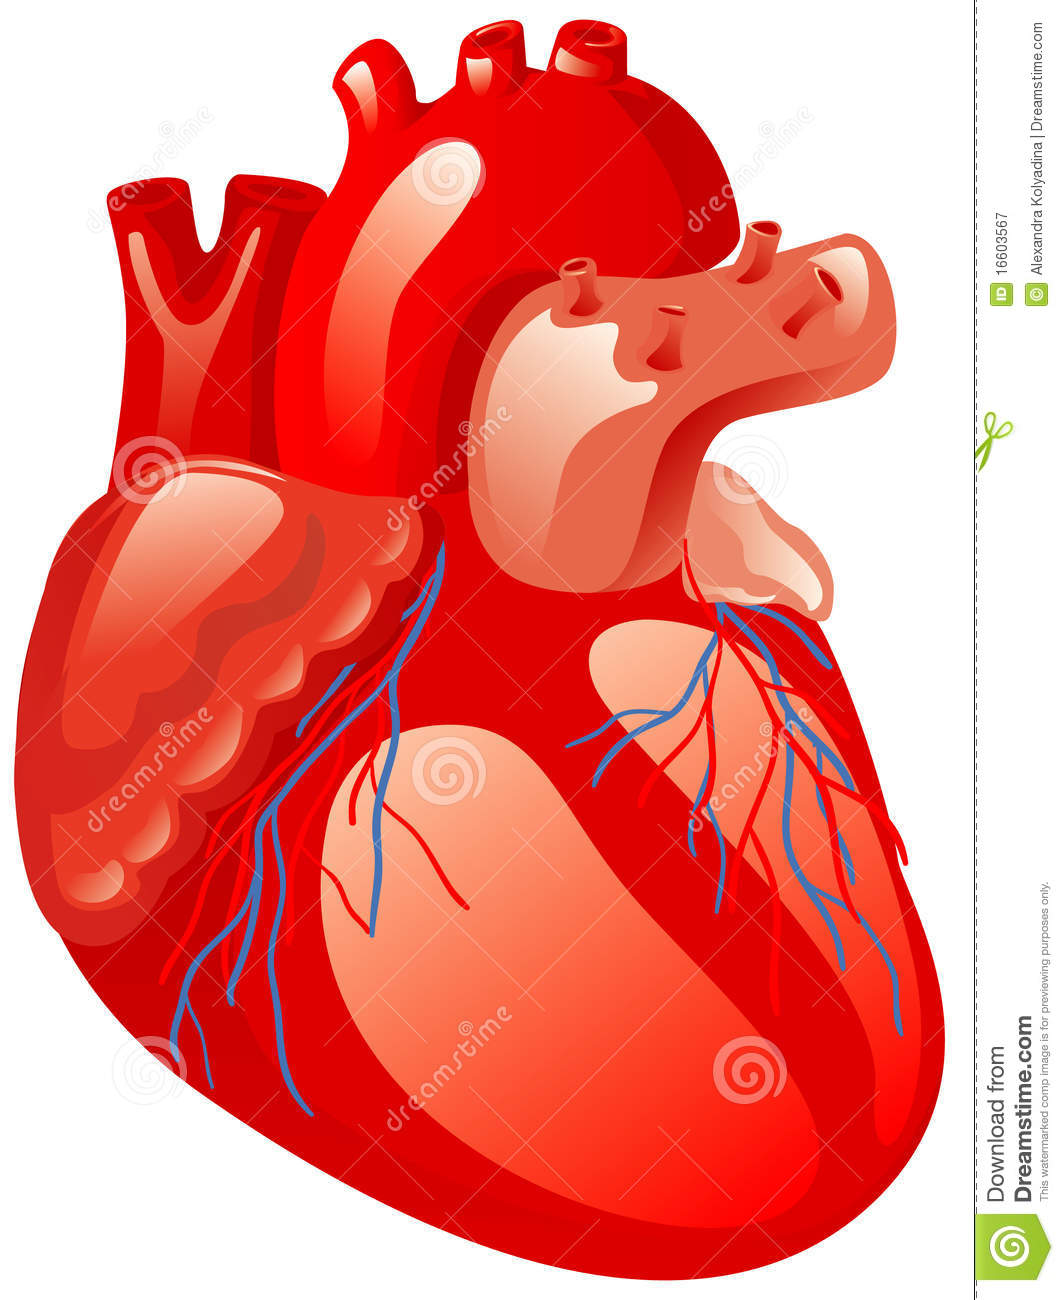 Human heart royalty free stock photography image 16603567 for Clipart cuore